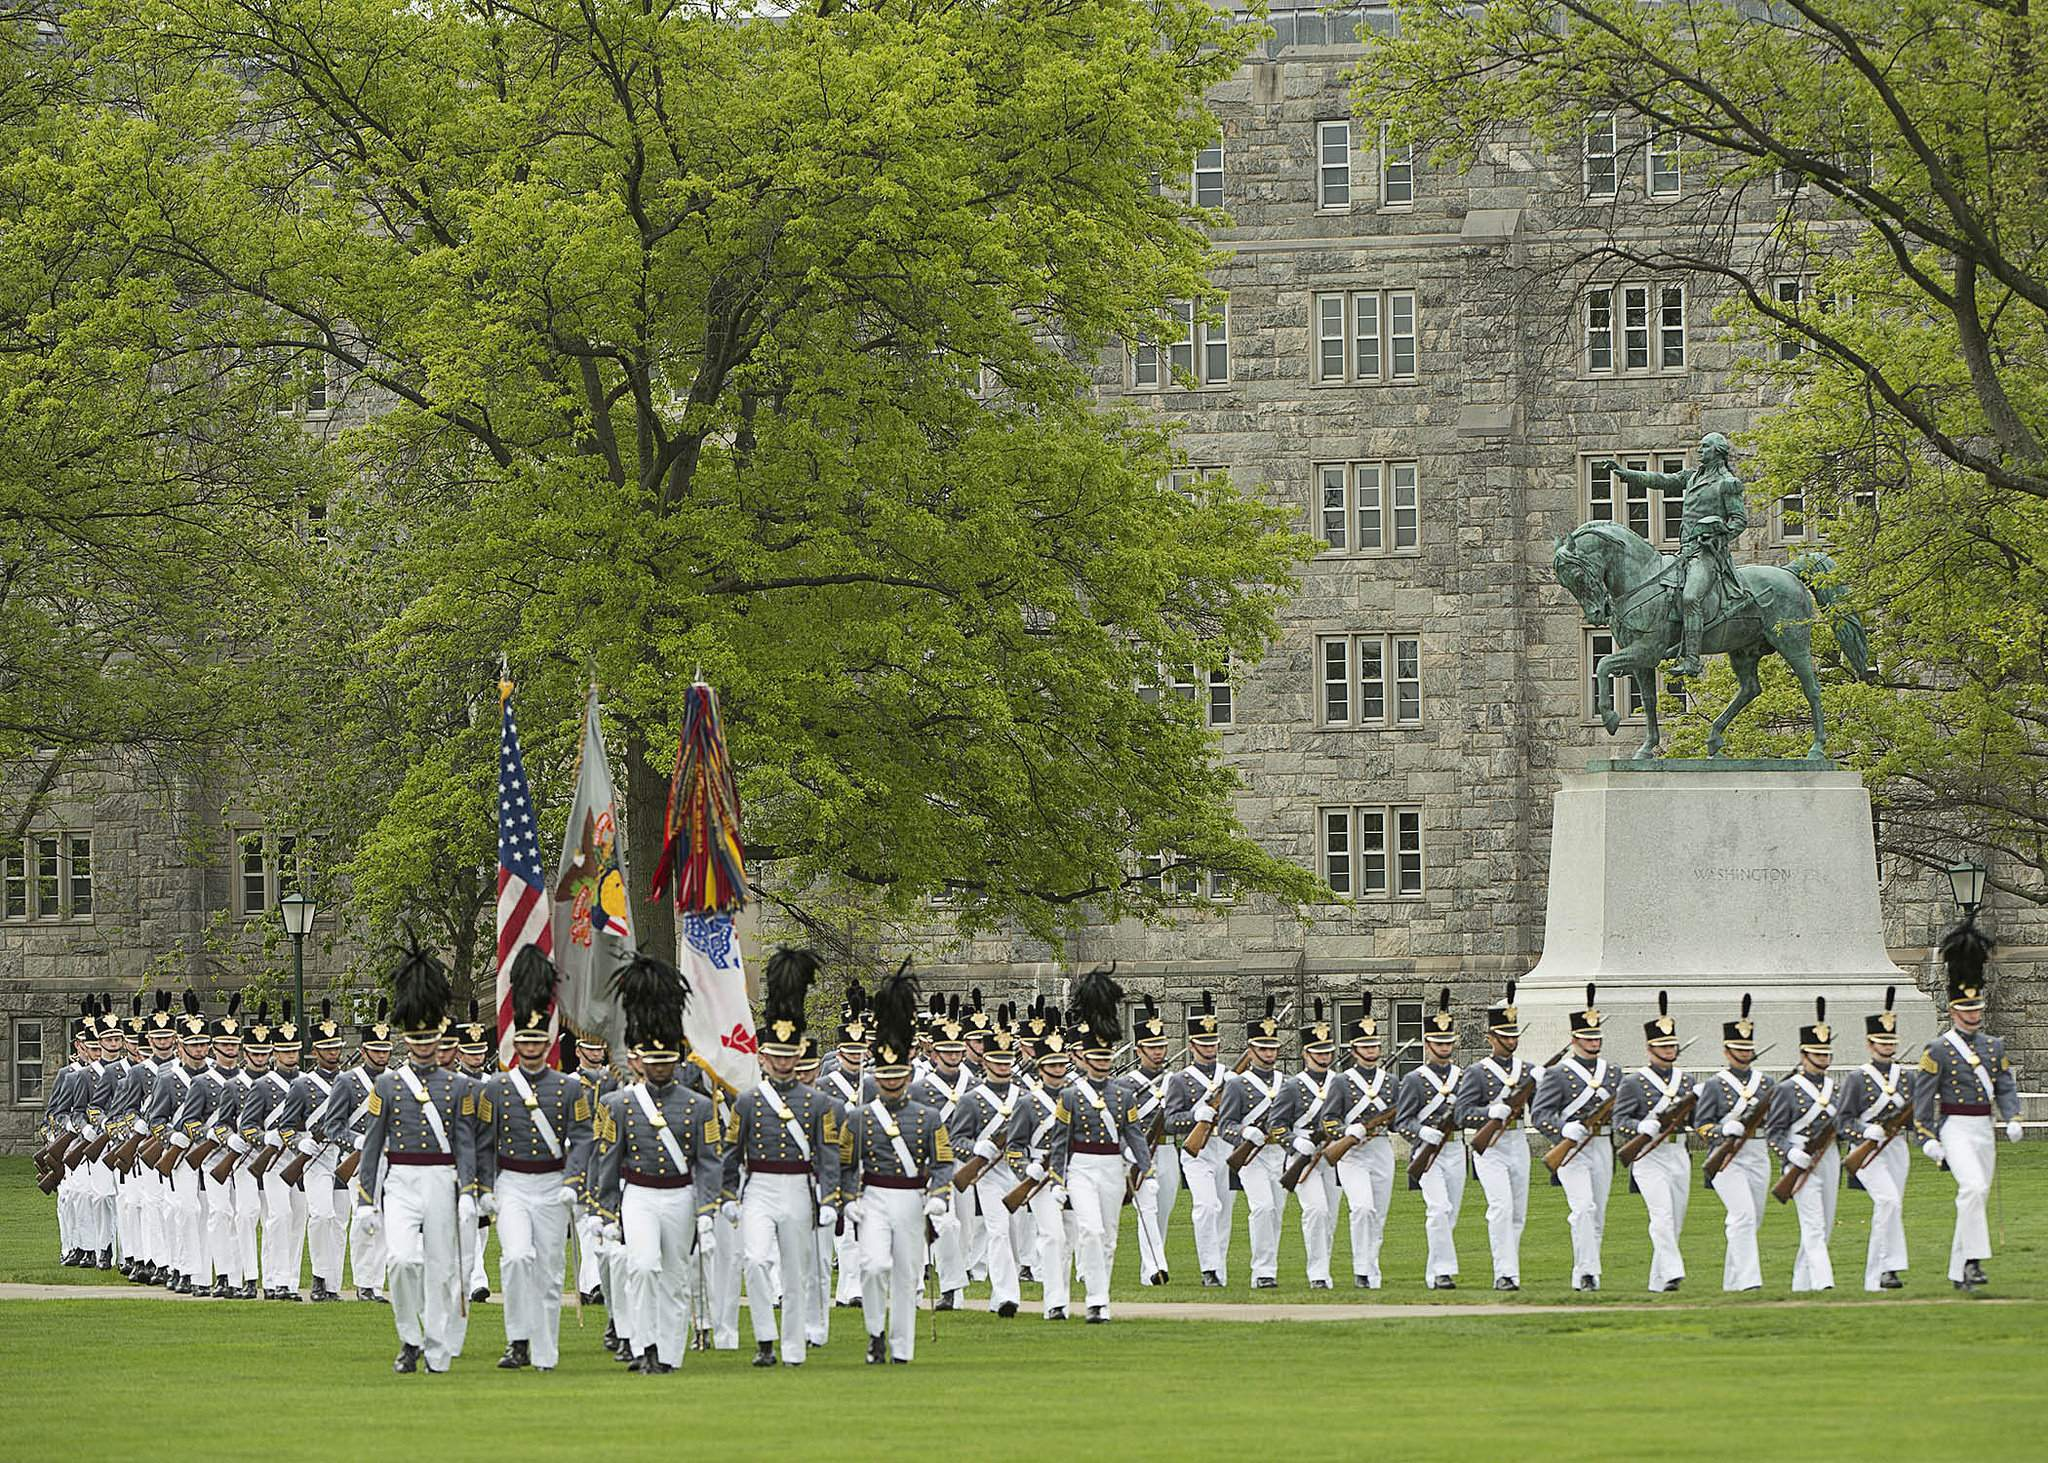 west point The U.S. Military Academy at West Point